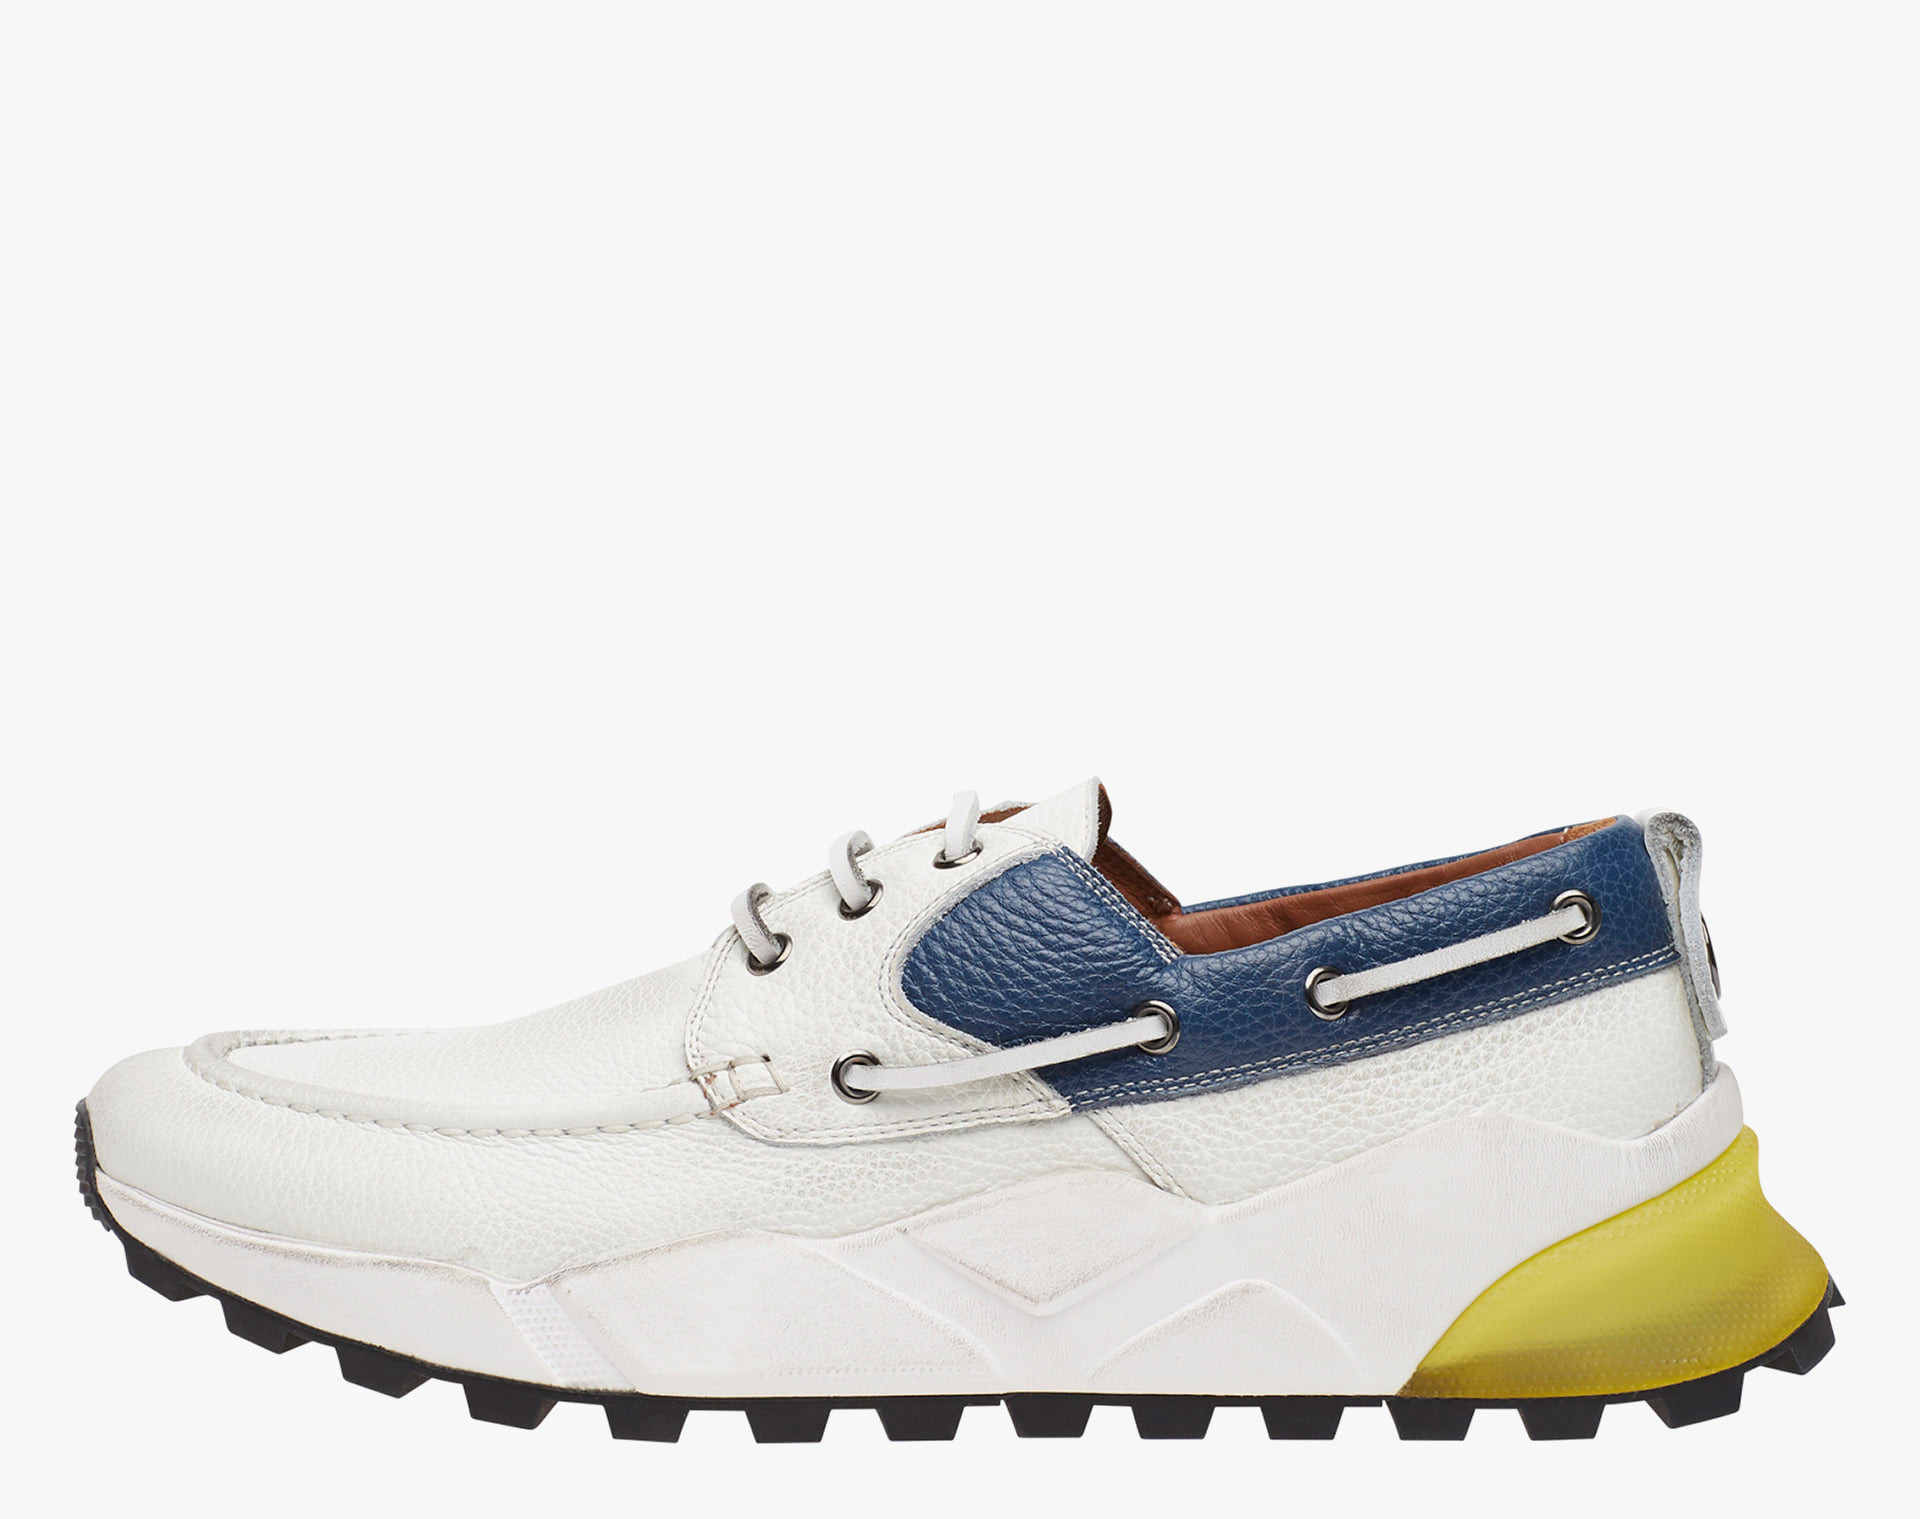 EXTREEMER - Sneaker sailor in vitello bottalato - Bianco/Blu/ocra